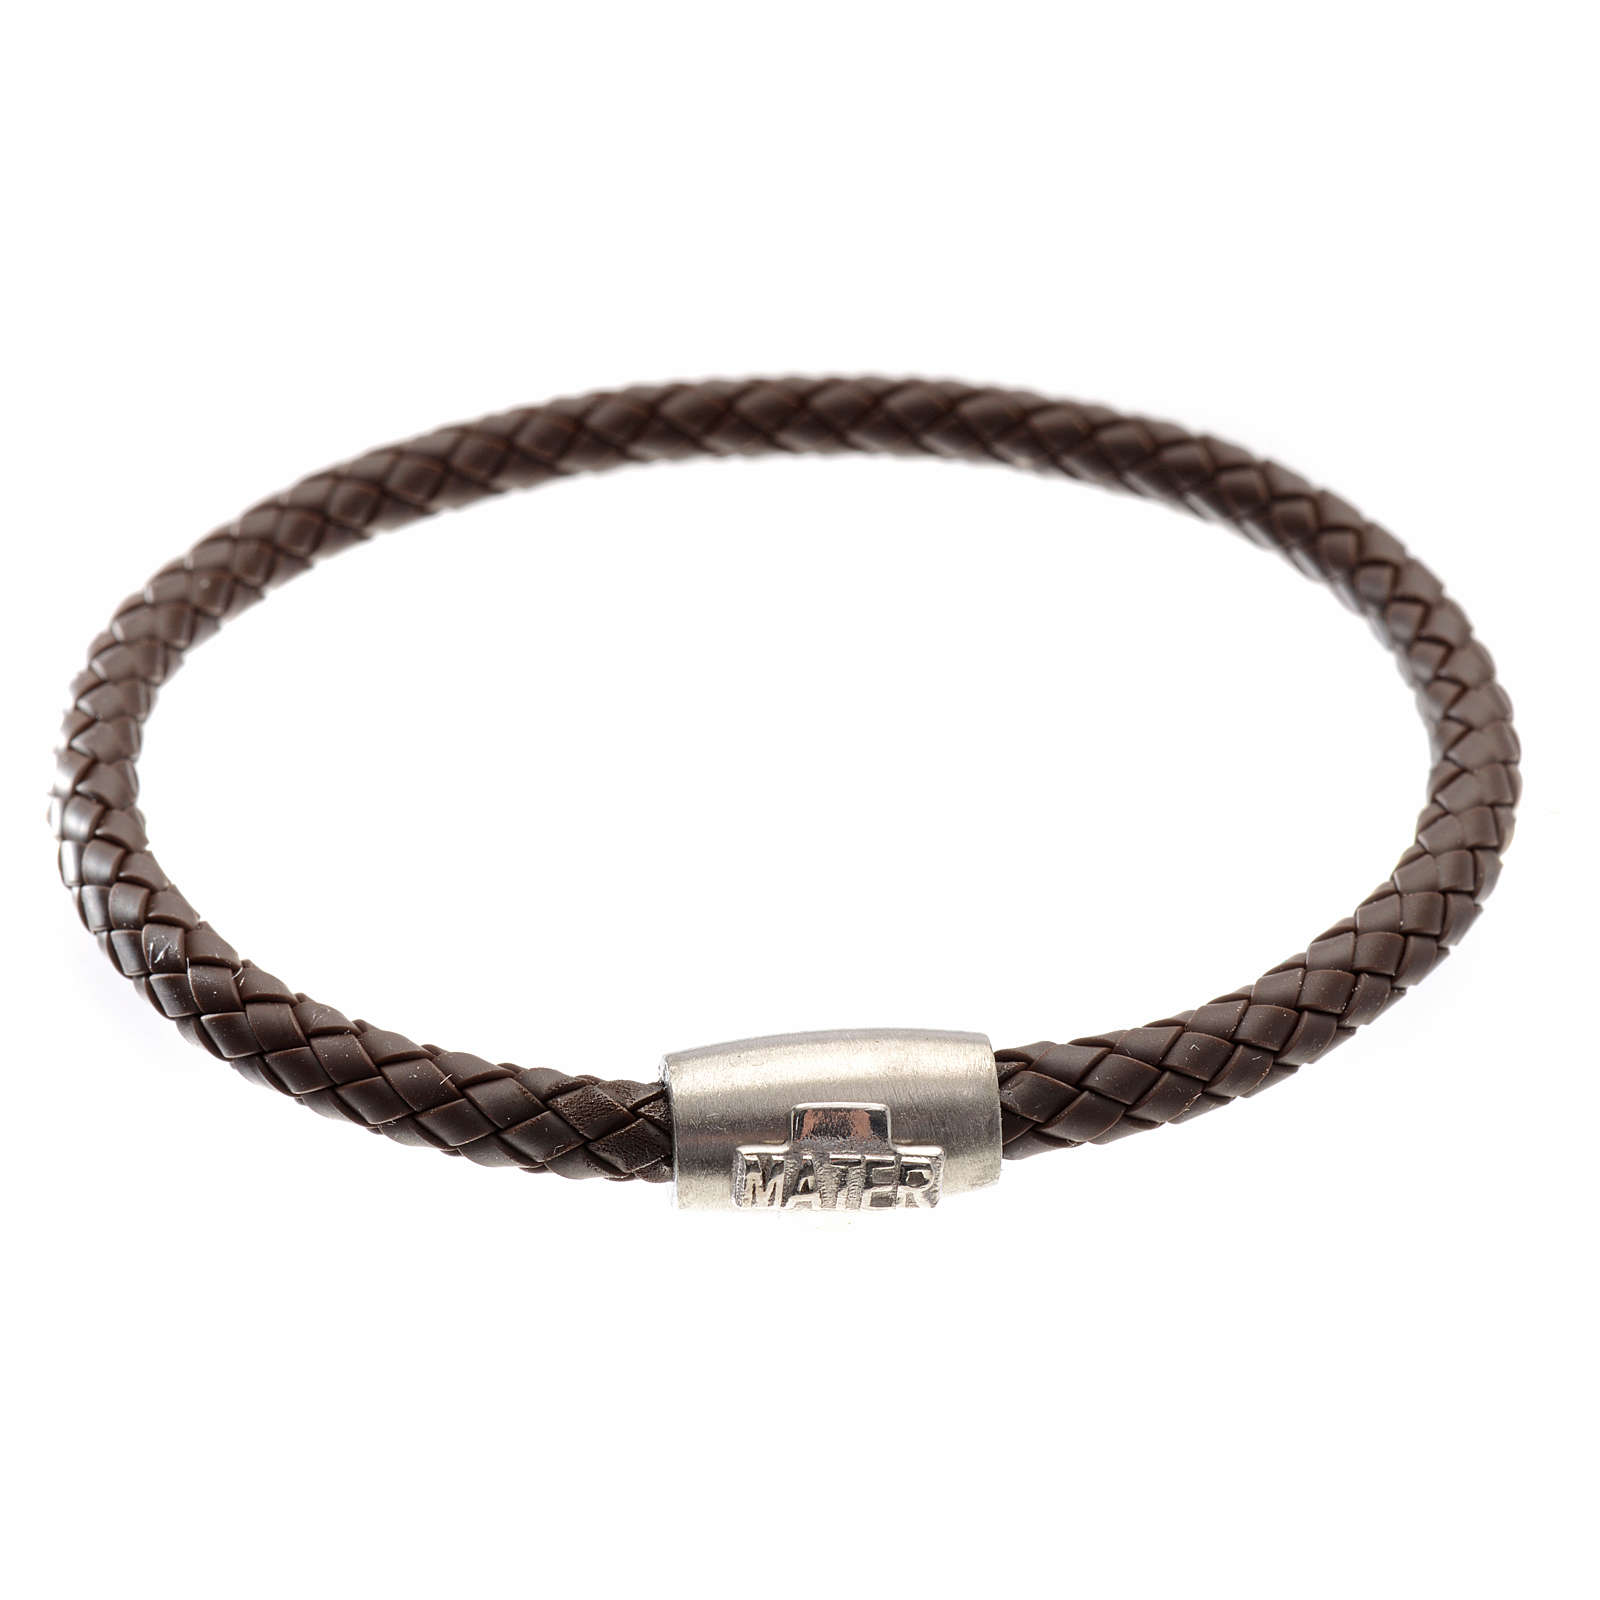 Bracelet in brown leather with silver cross, MATER jewels 4